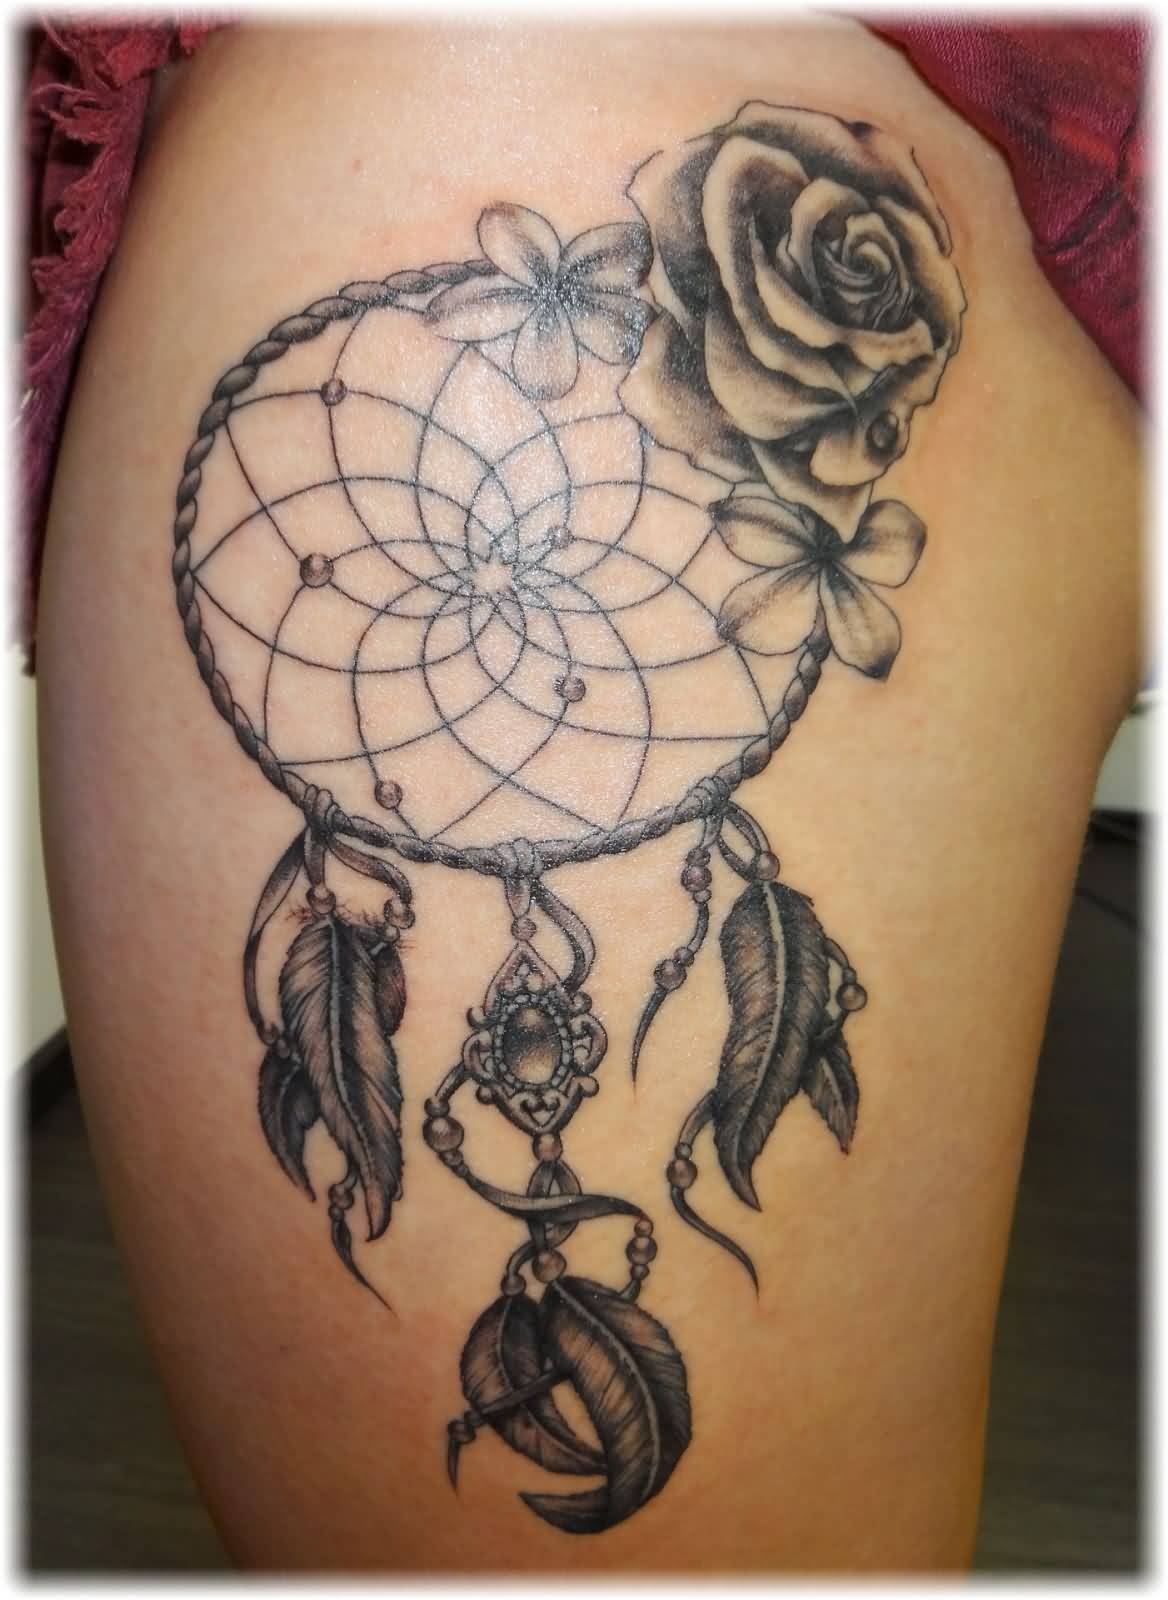 36+ Dreamcatcher With Roses Tattoos Ideas